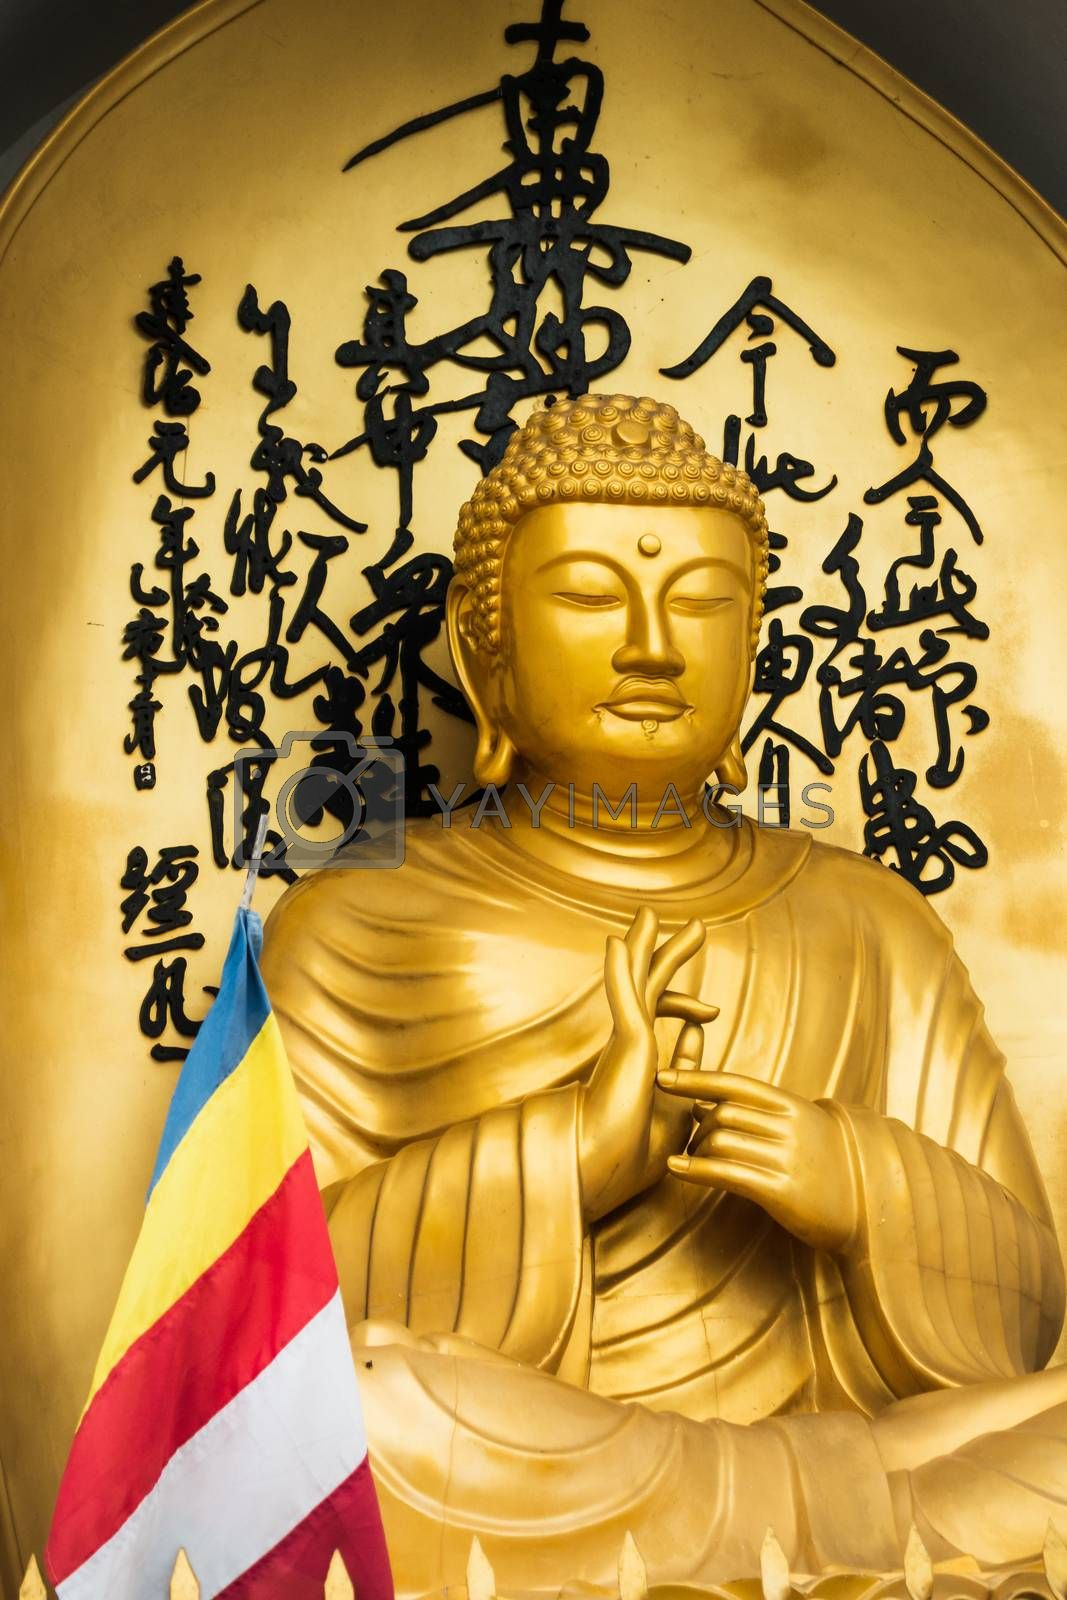 Golden Buddha statue and buddhist flag at the World Peace Pagoda in Pokhara, Nepal